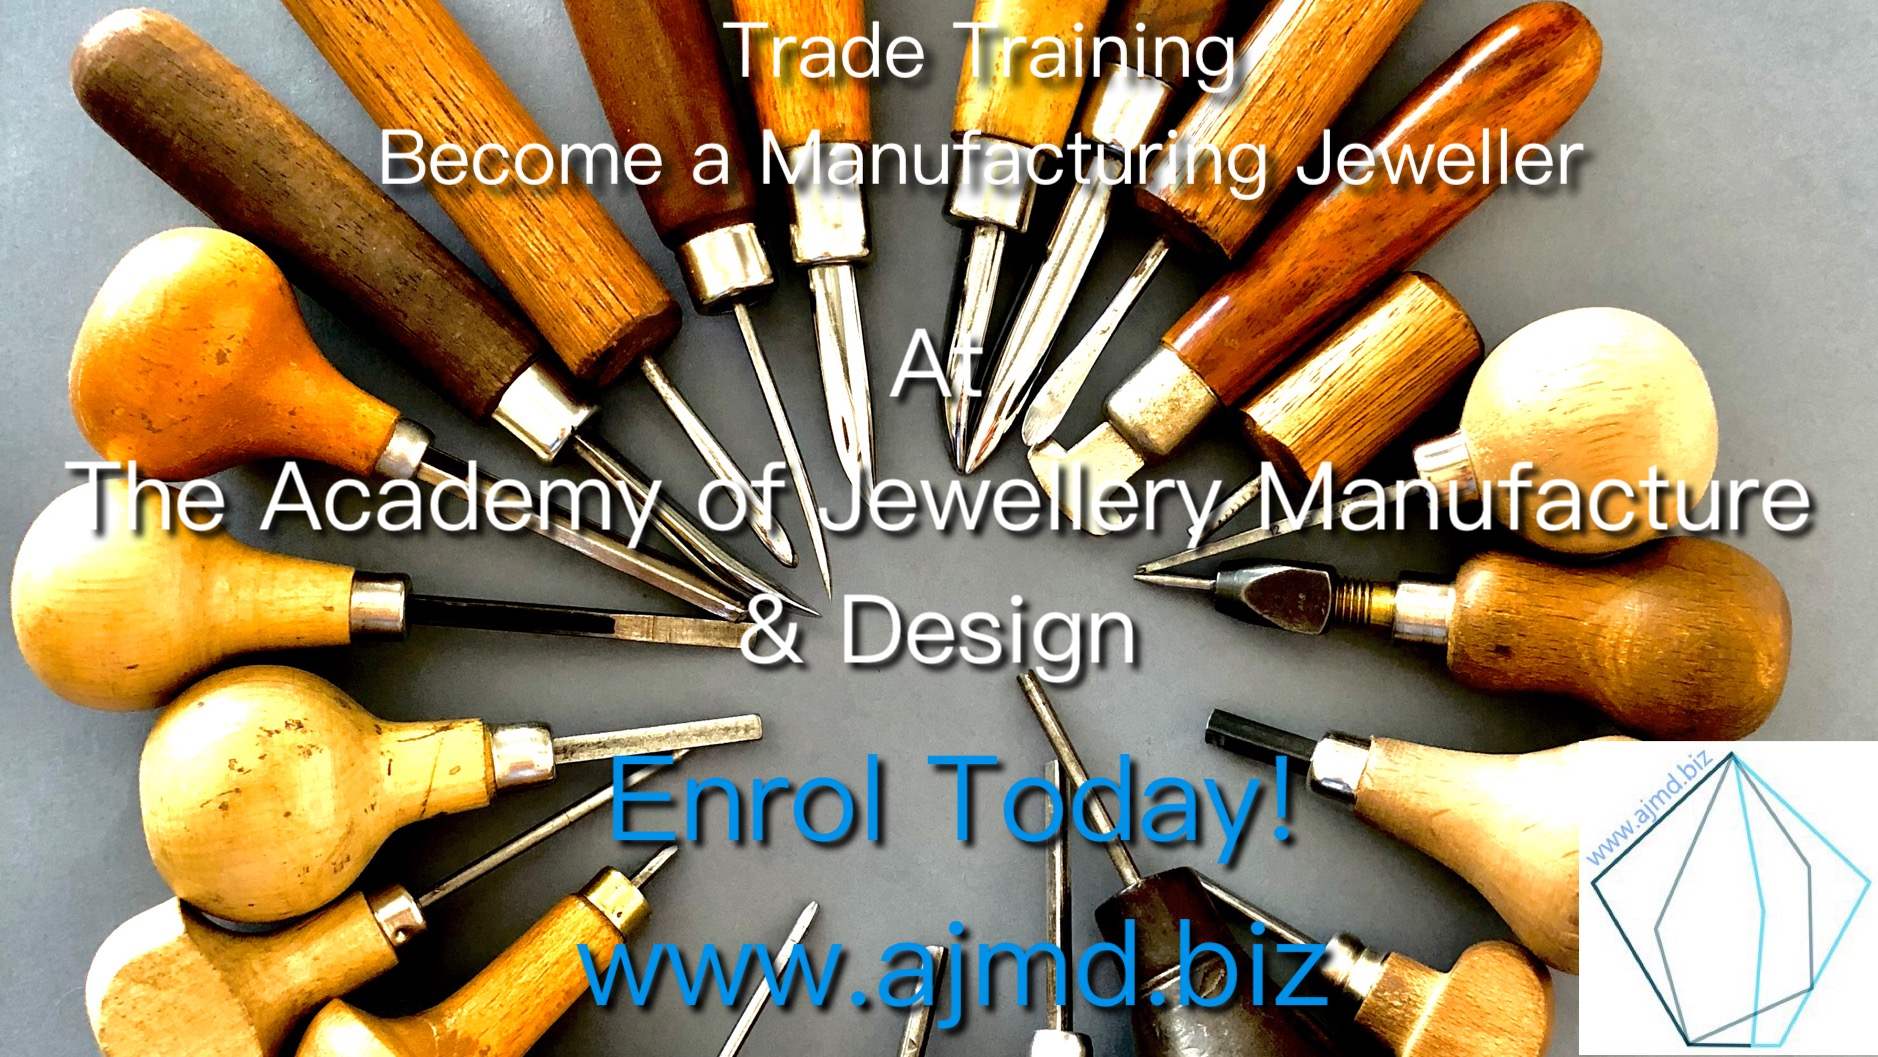 Enrol Today at the Academy of Jewellery Manufacture and Deign